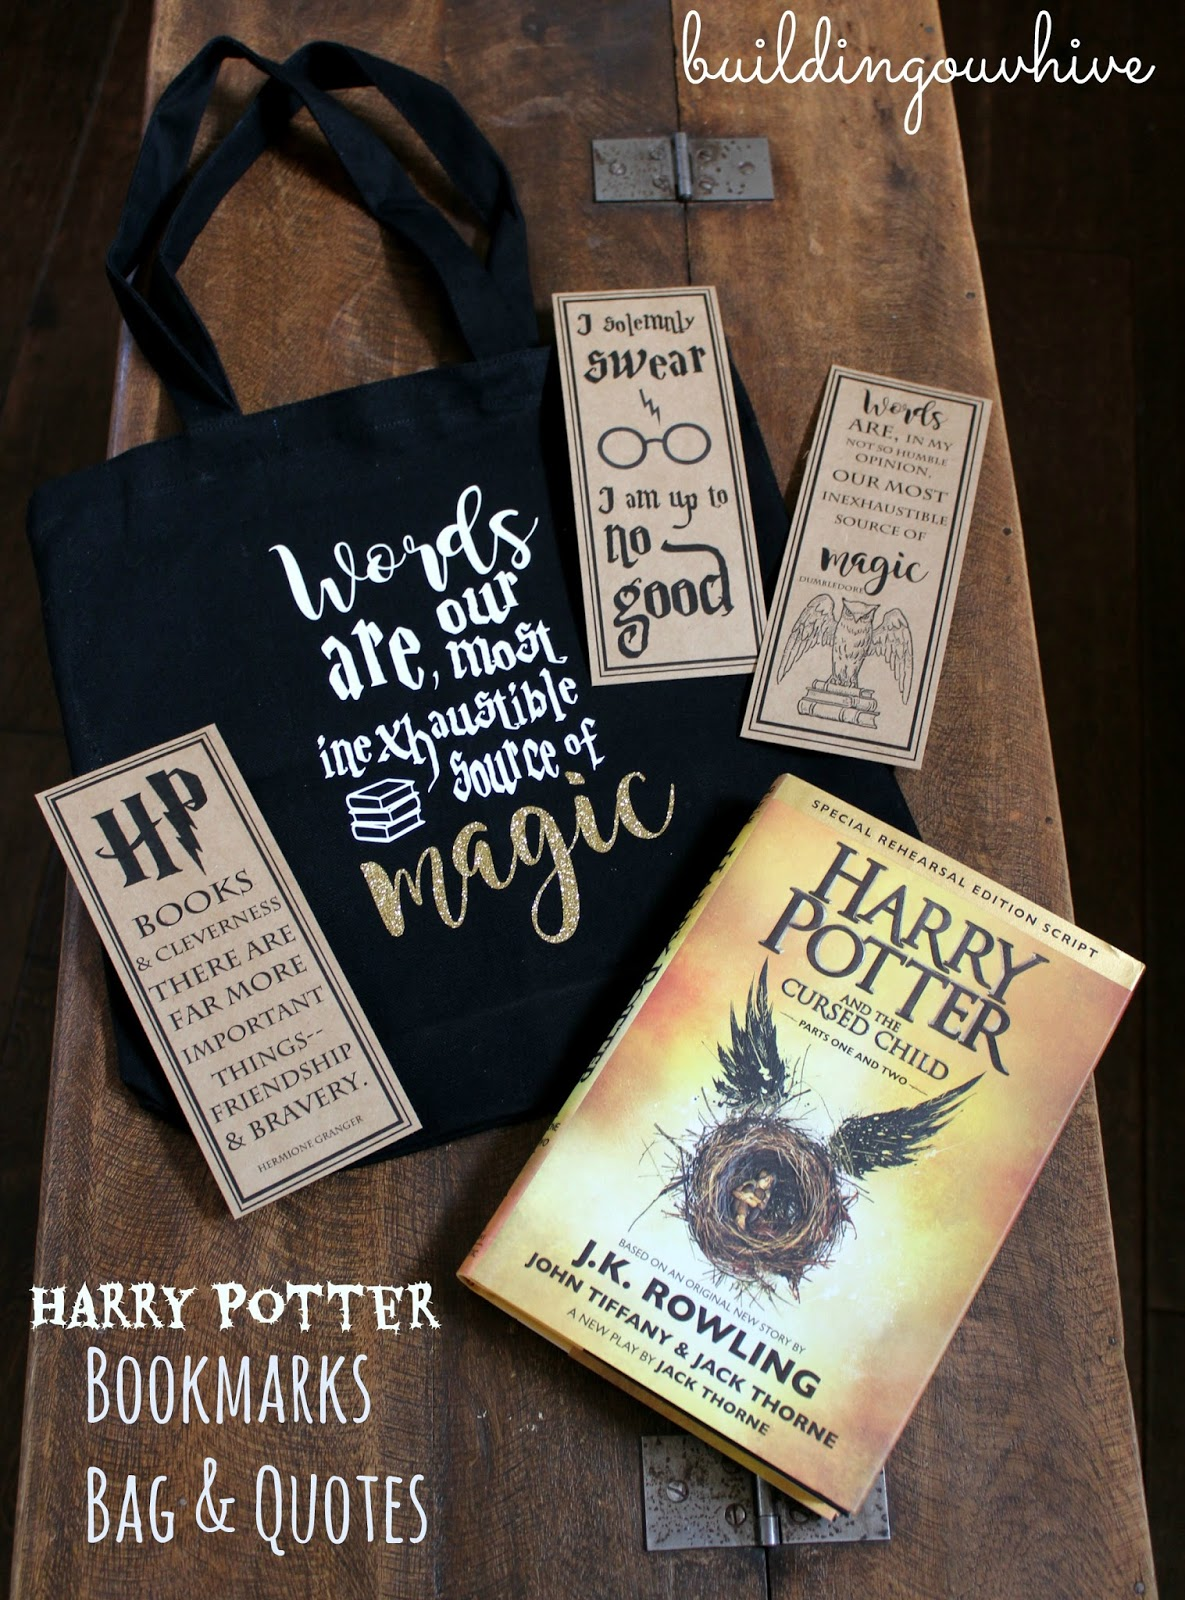 building our hive: harry potter bookmarks, bag and quotes